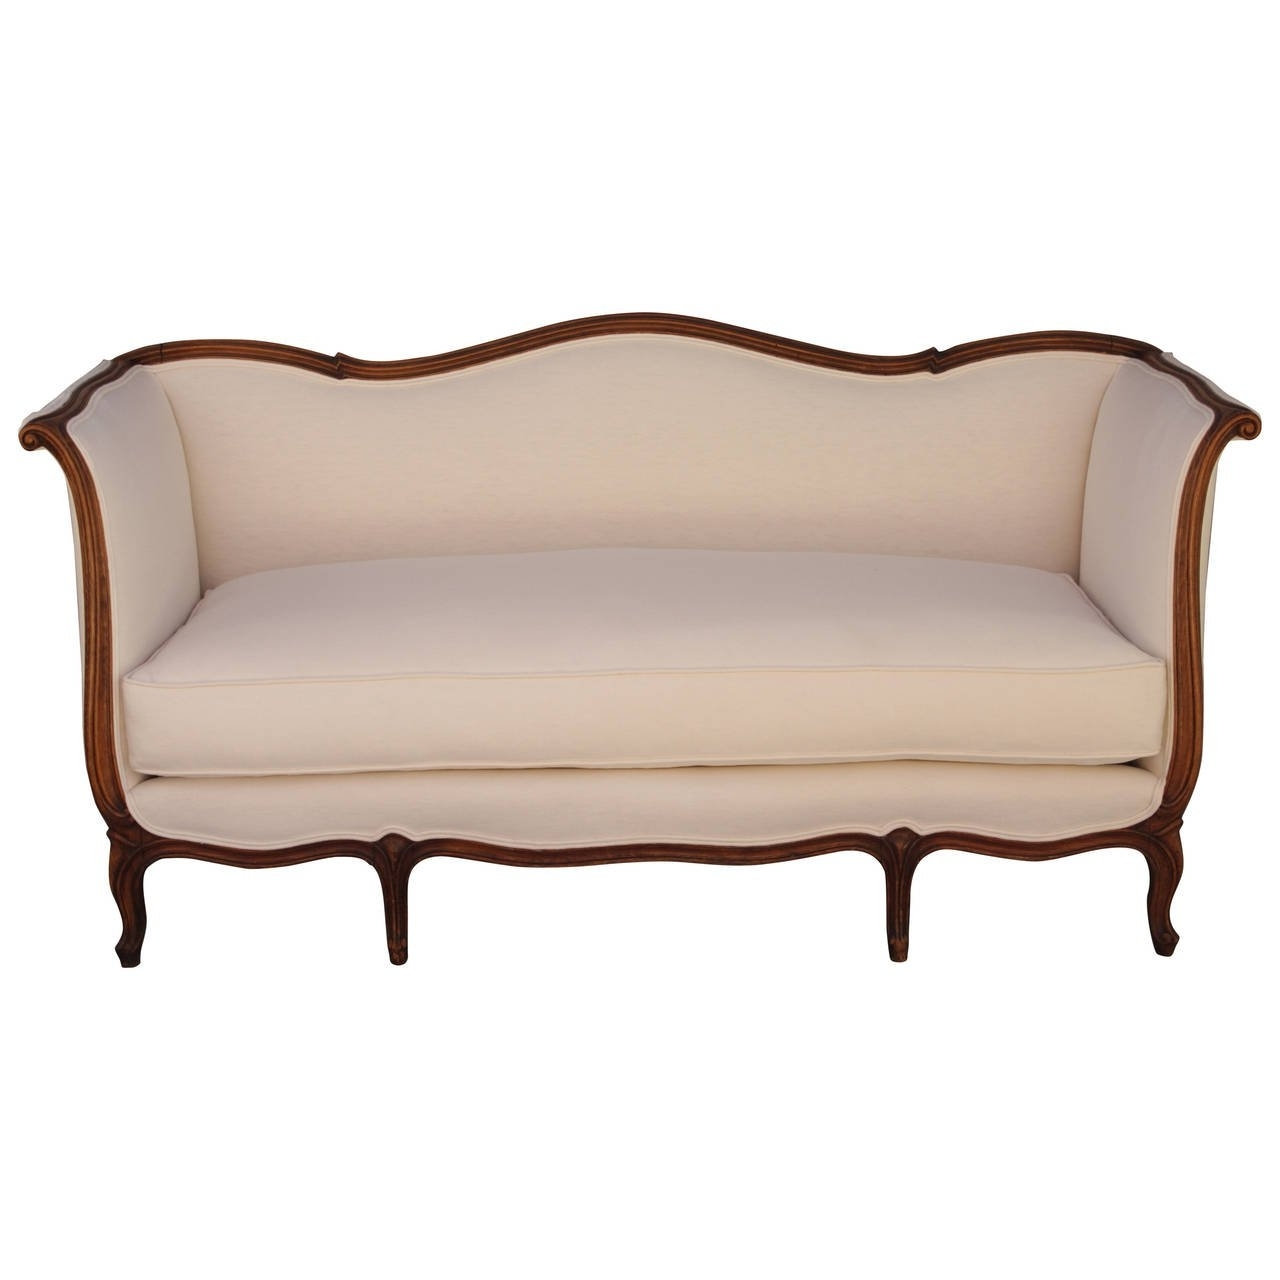 French Style Sofas Within Most Recent French Louis Xv Style Sofa With Linen Upholstery At 1Stdibs (View 10 of 20)